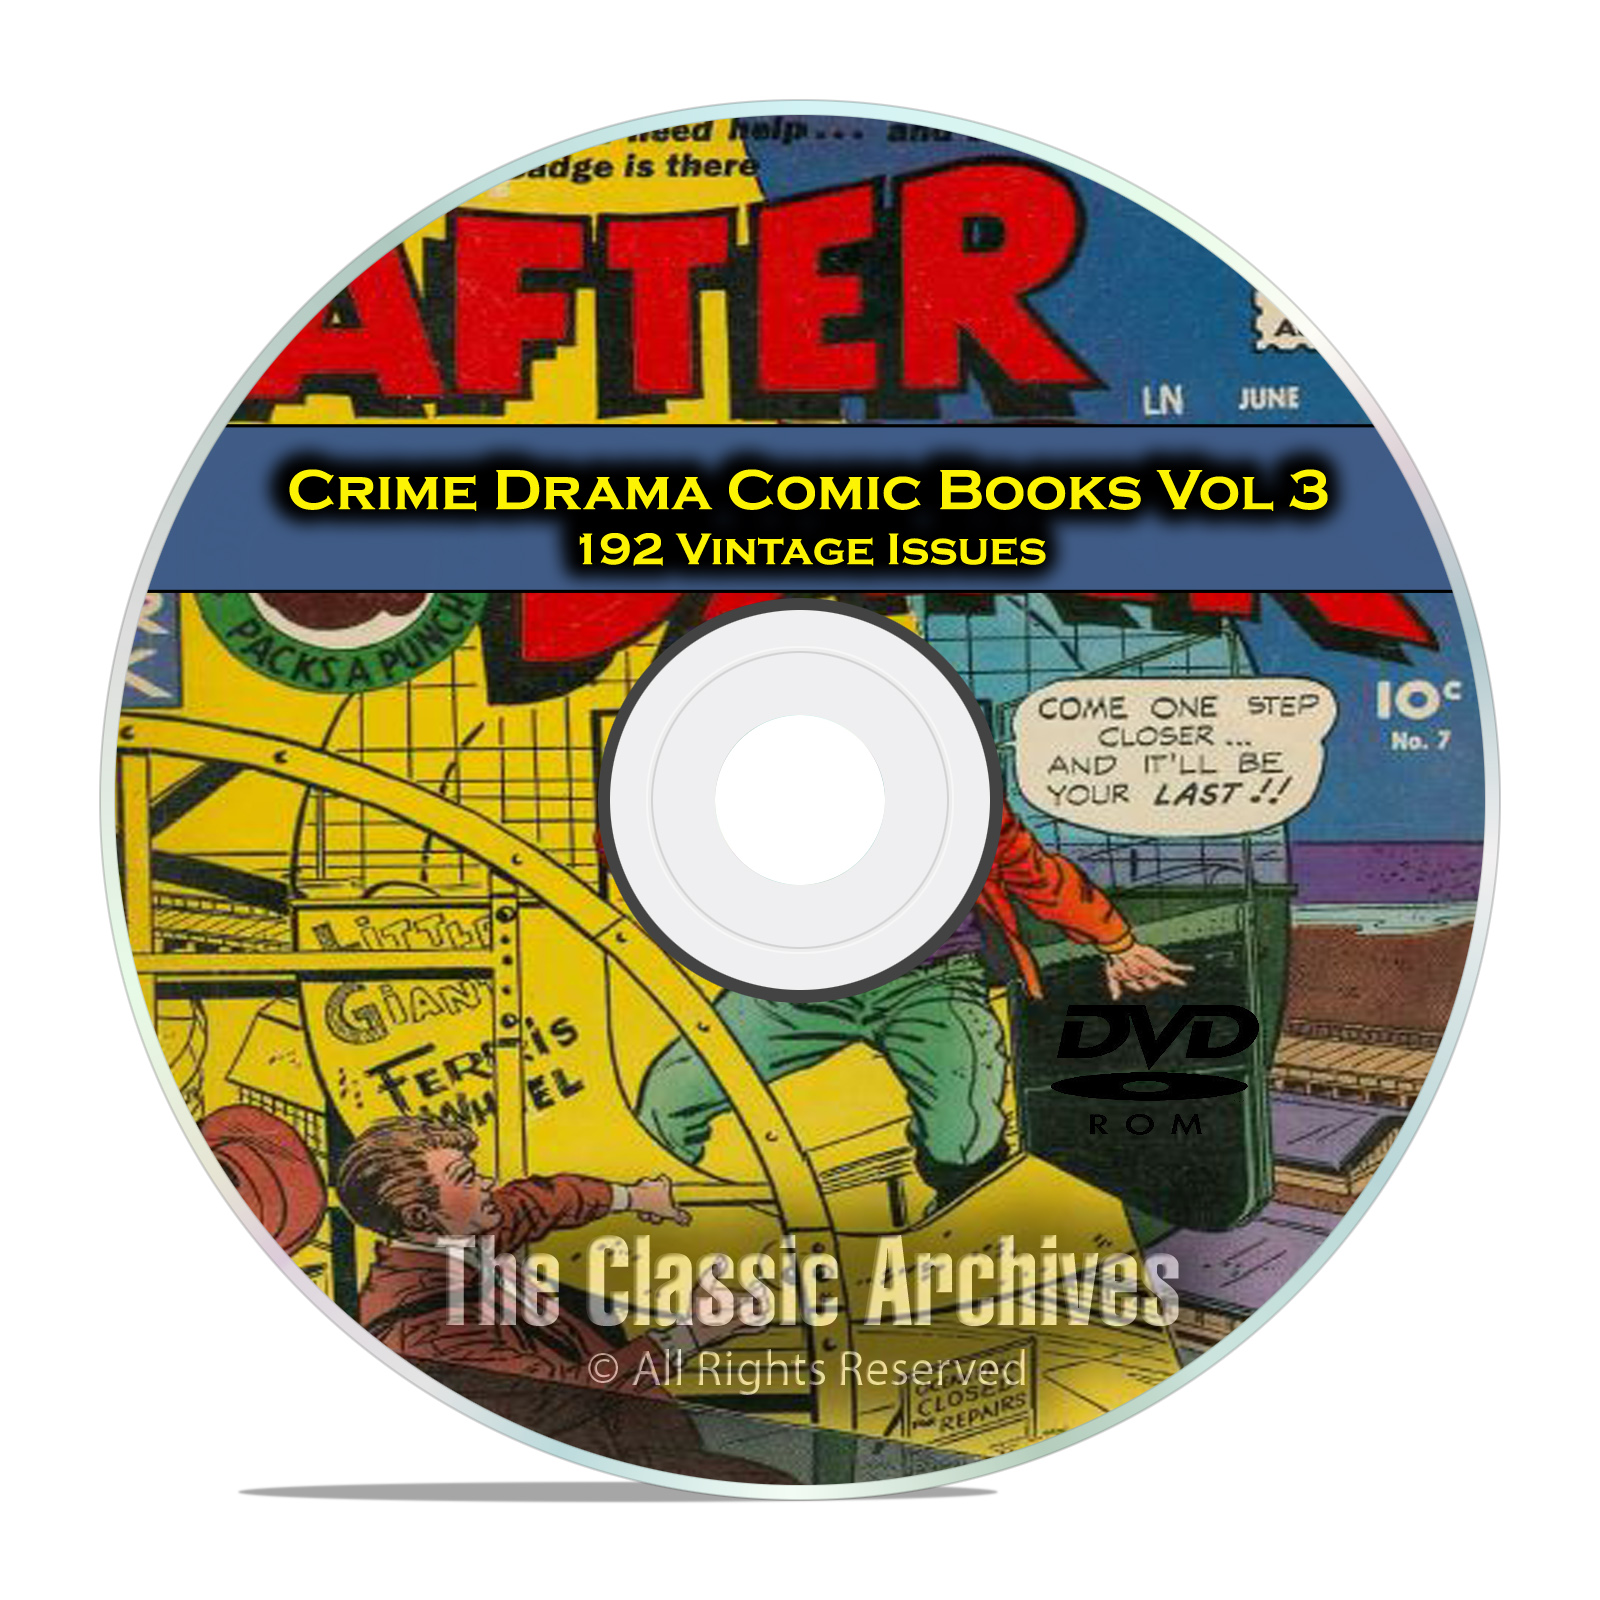 Crime Drama, Suspense, Vol 3, Murder Incorporated, Golden Age Comics DVD